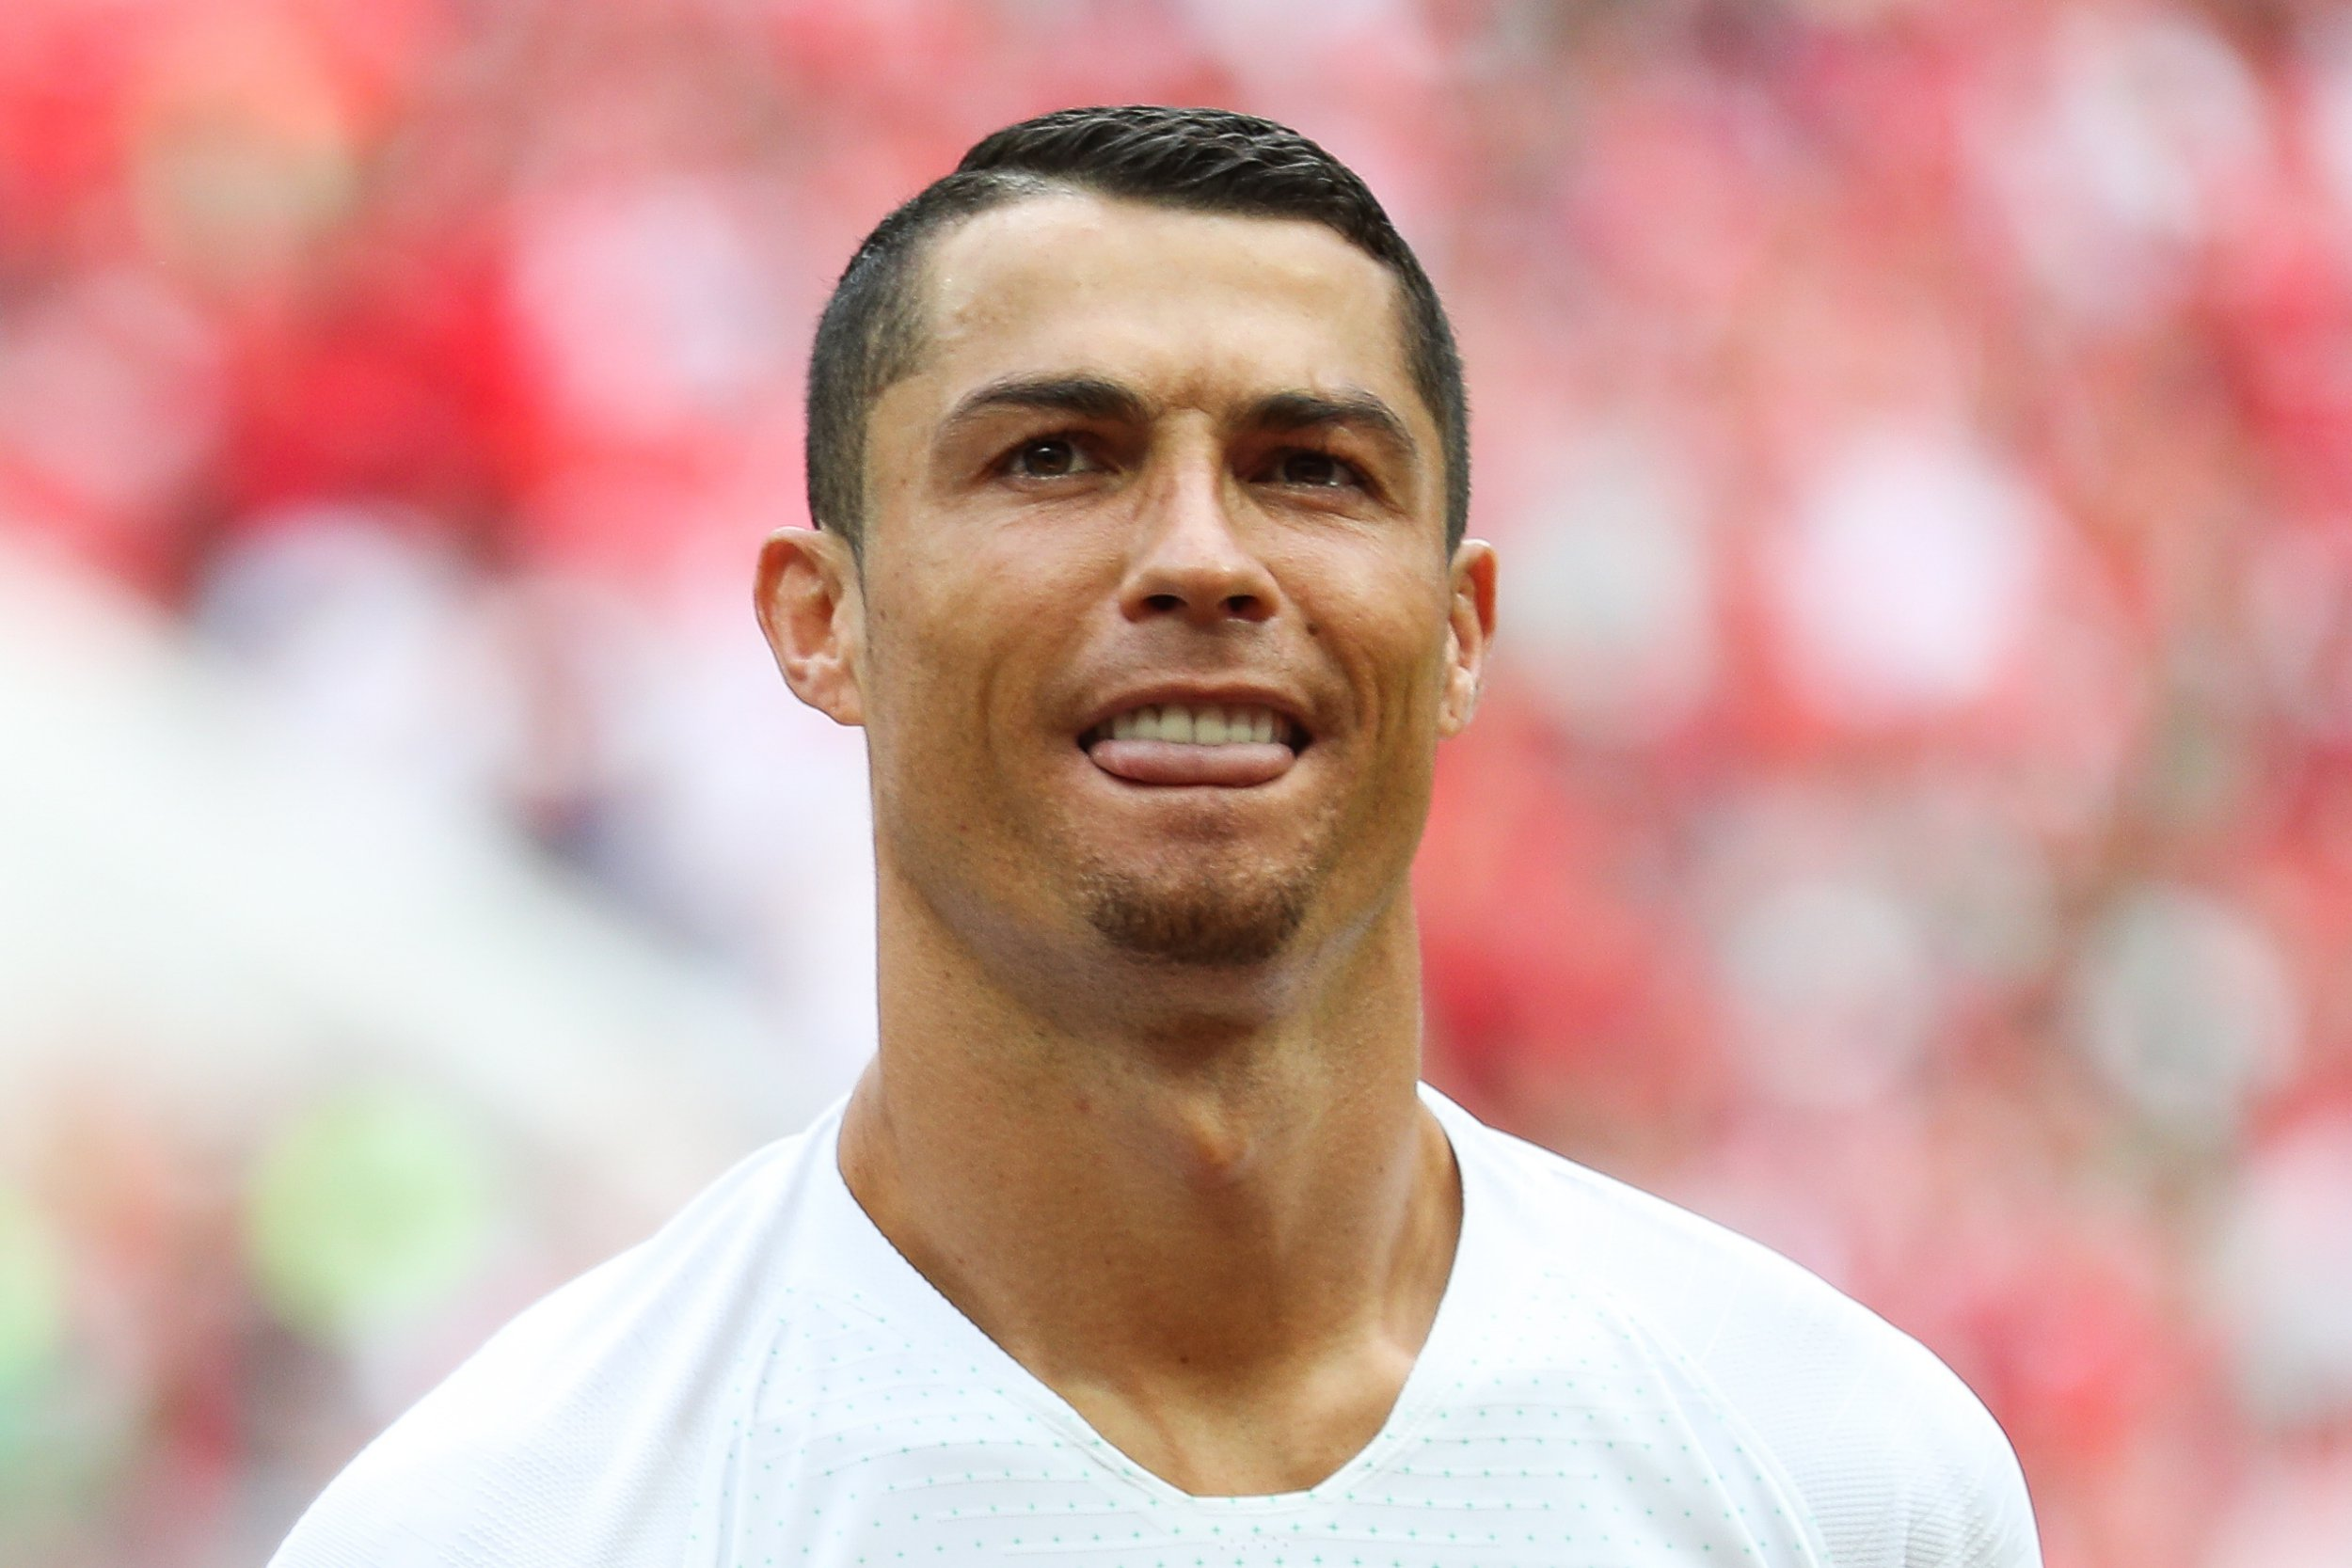 Cristiano Ronaldo reveals why he's growing a goatee beard during the World Cup